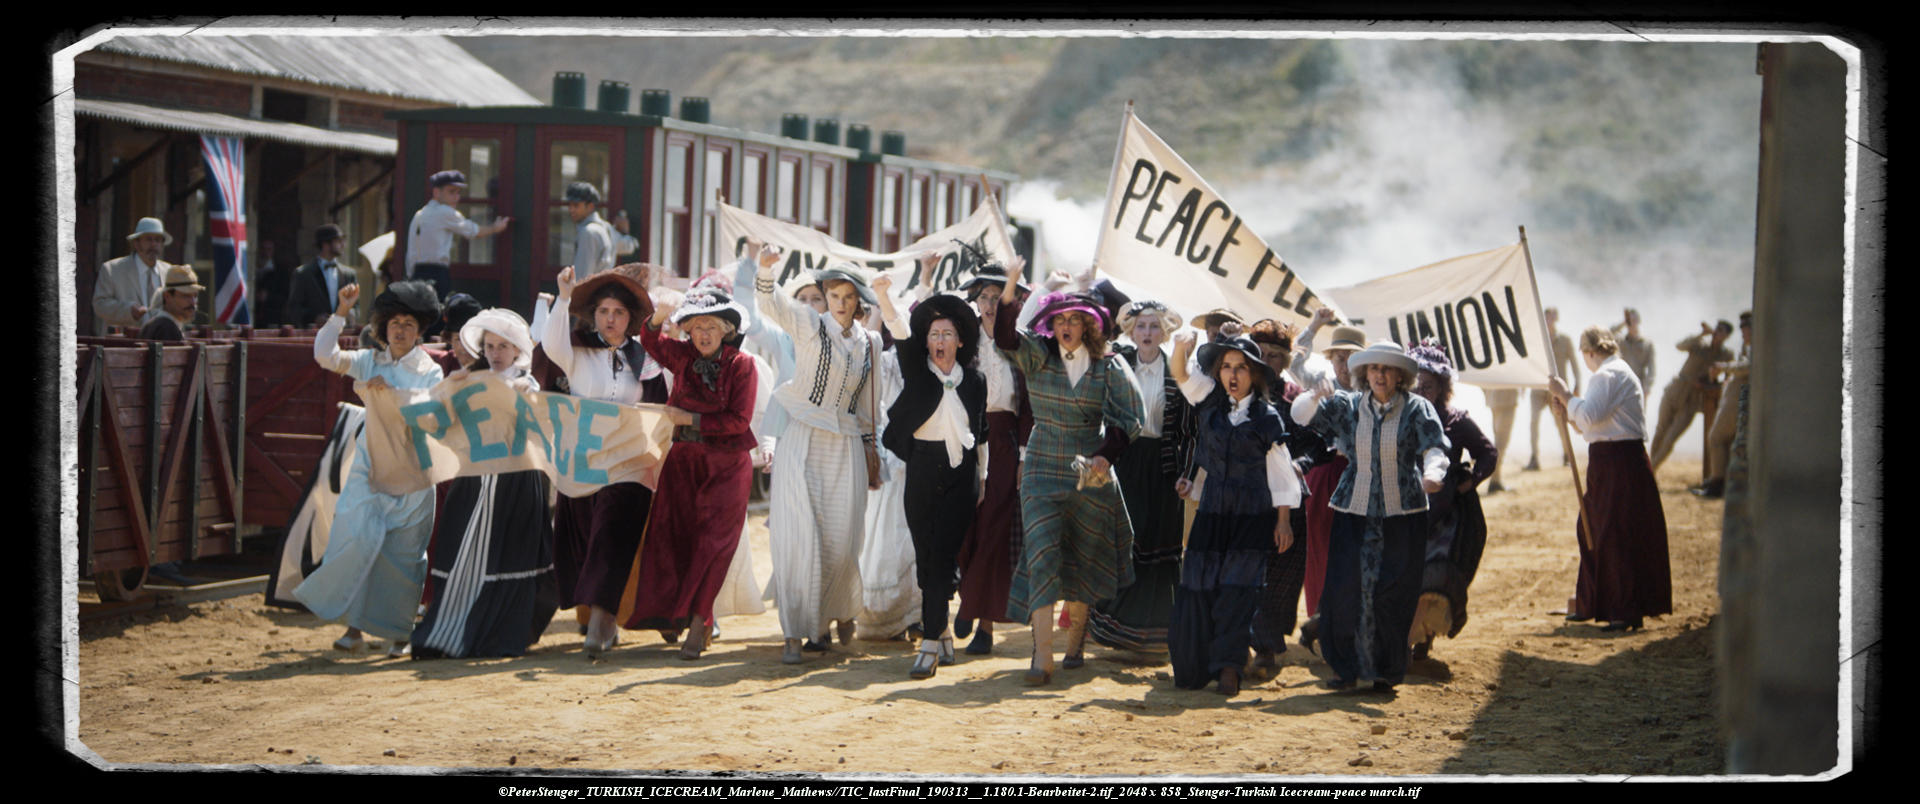 190902_group of women with banners, demonstrating for peace